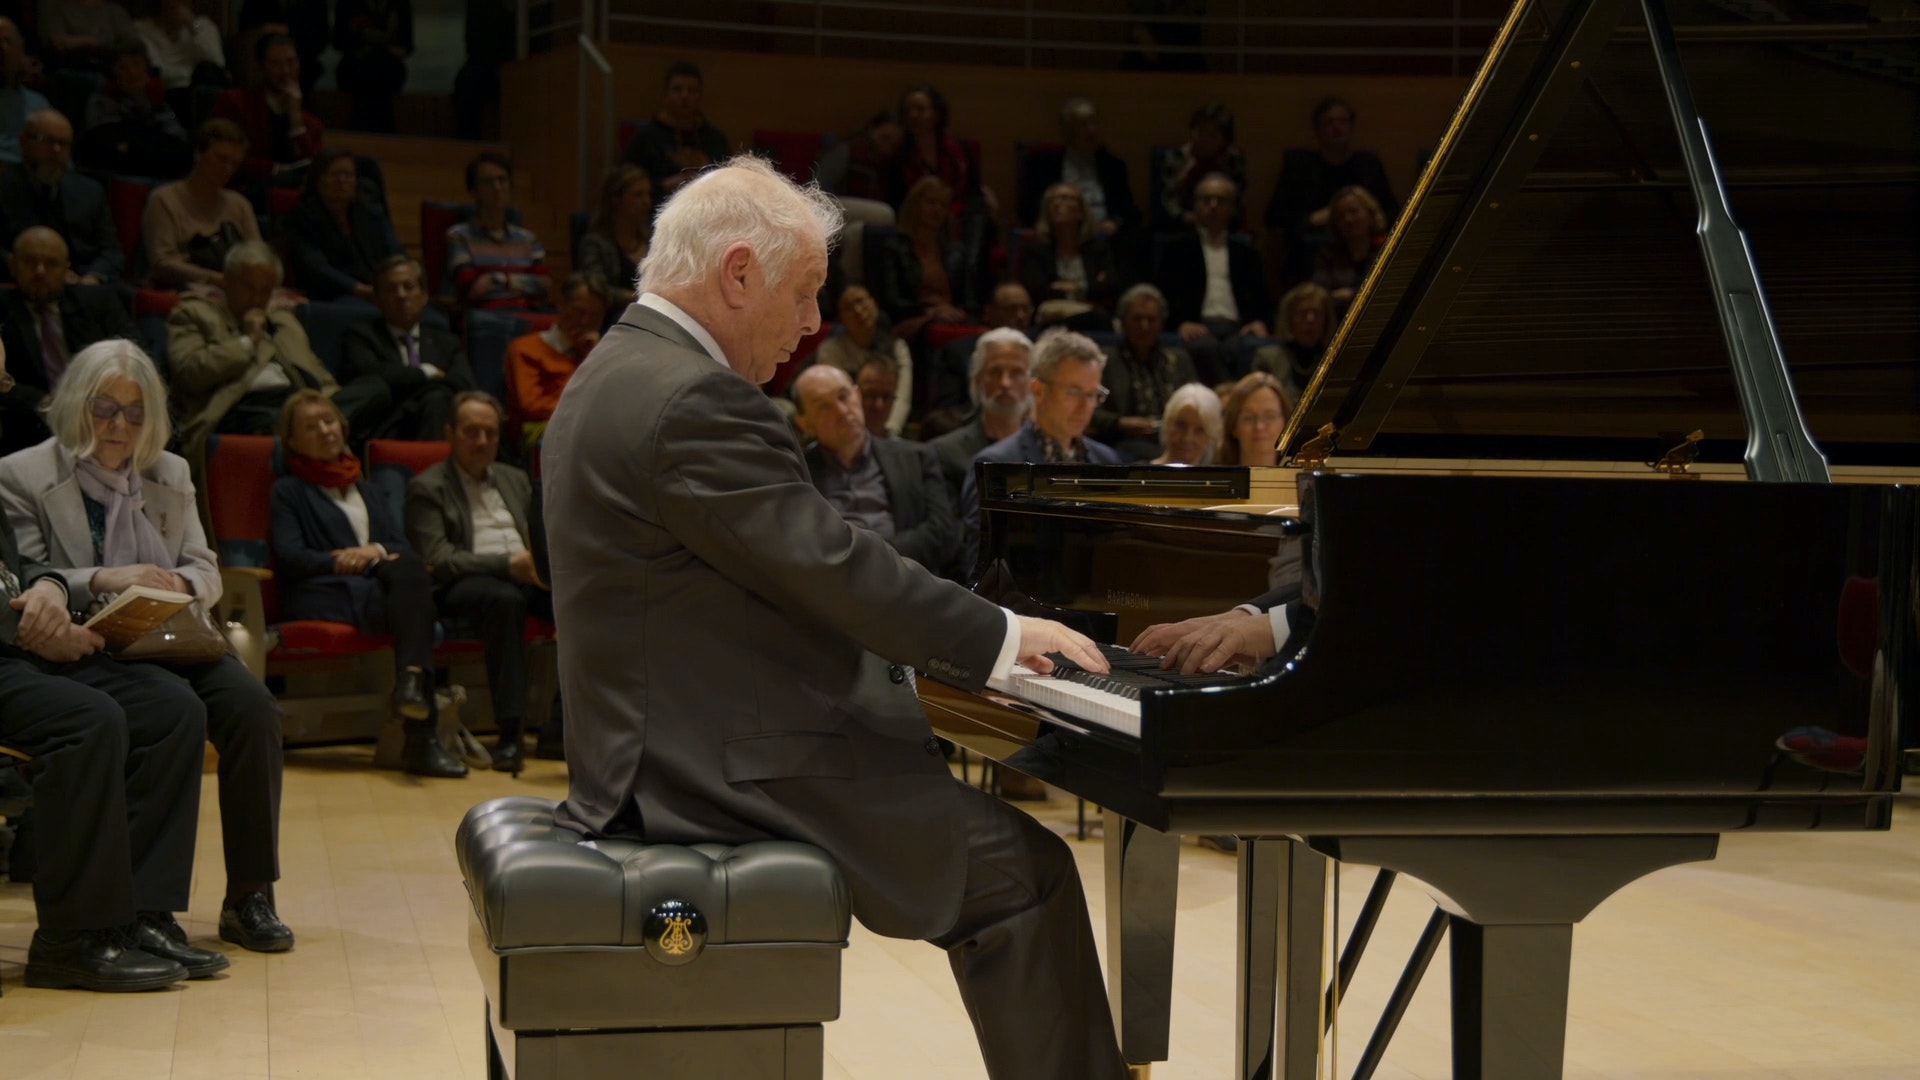 Daniel Barenboim performs Schubert's Piano Sonatas Nos. 9, 18, and 19